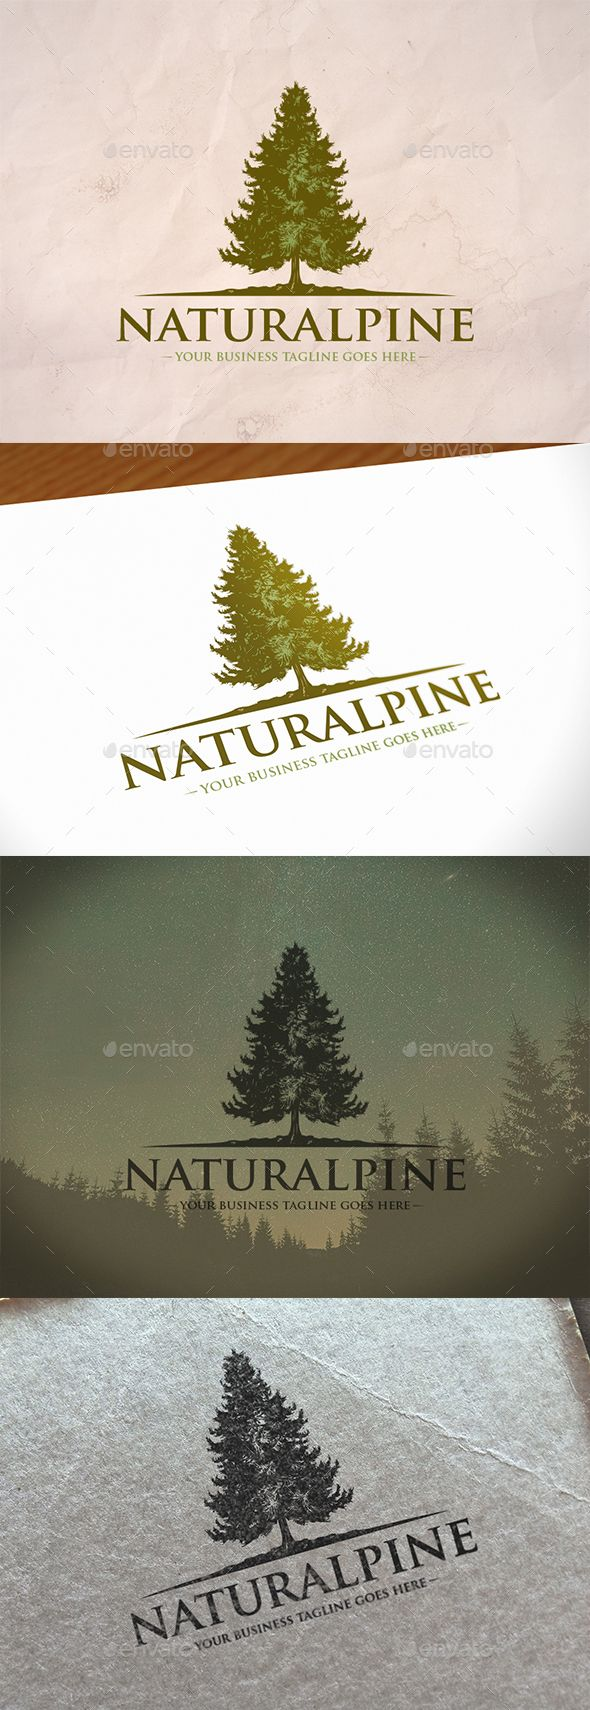 Pine Tree Logo Template PSD, Vector EPS, AI Illustrator. Download here: https://graphicriver.net/item/pine-tree-logo-template/17486196?ref=ksioks